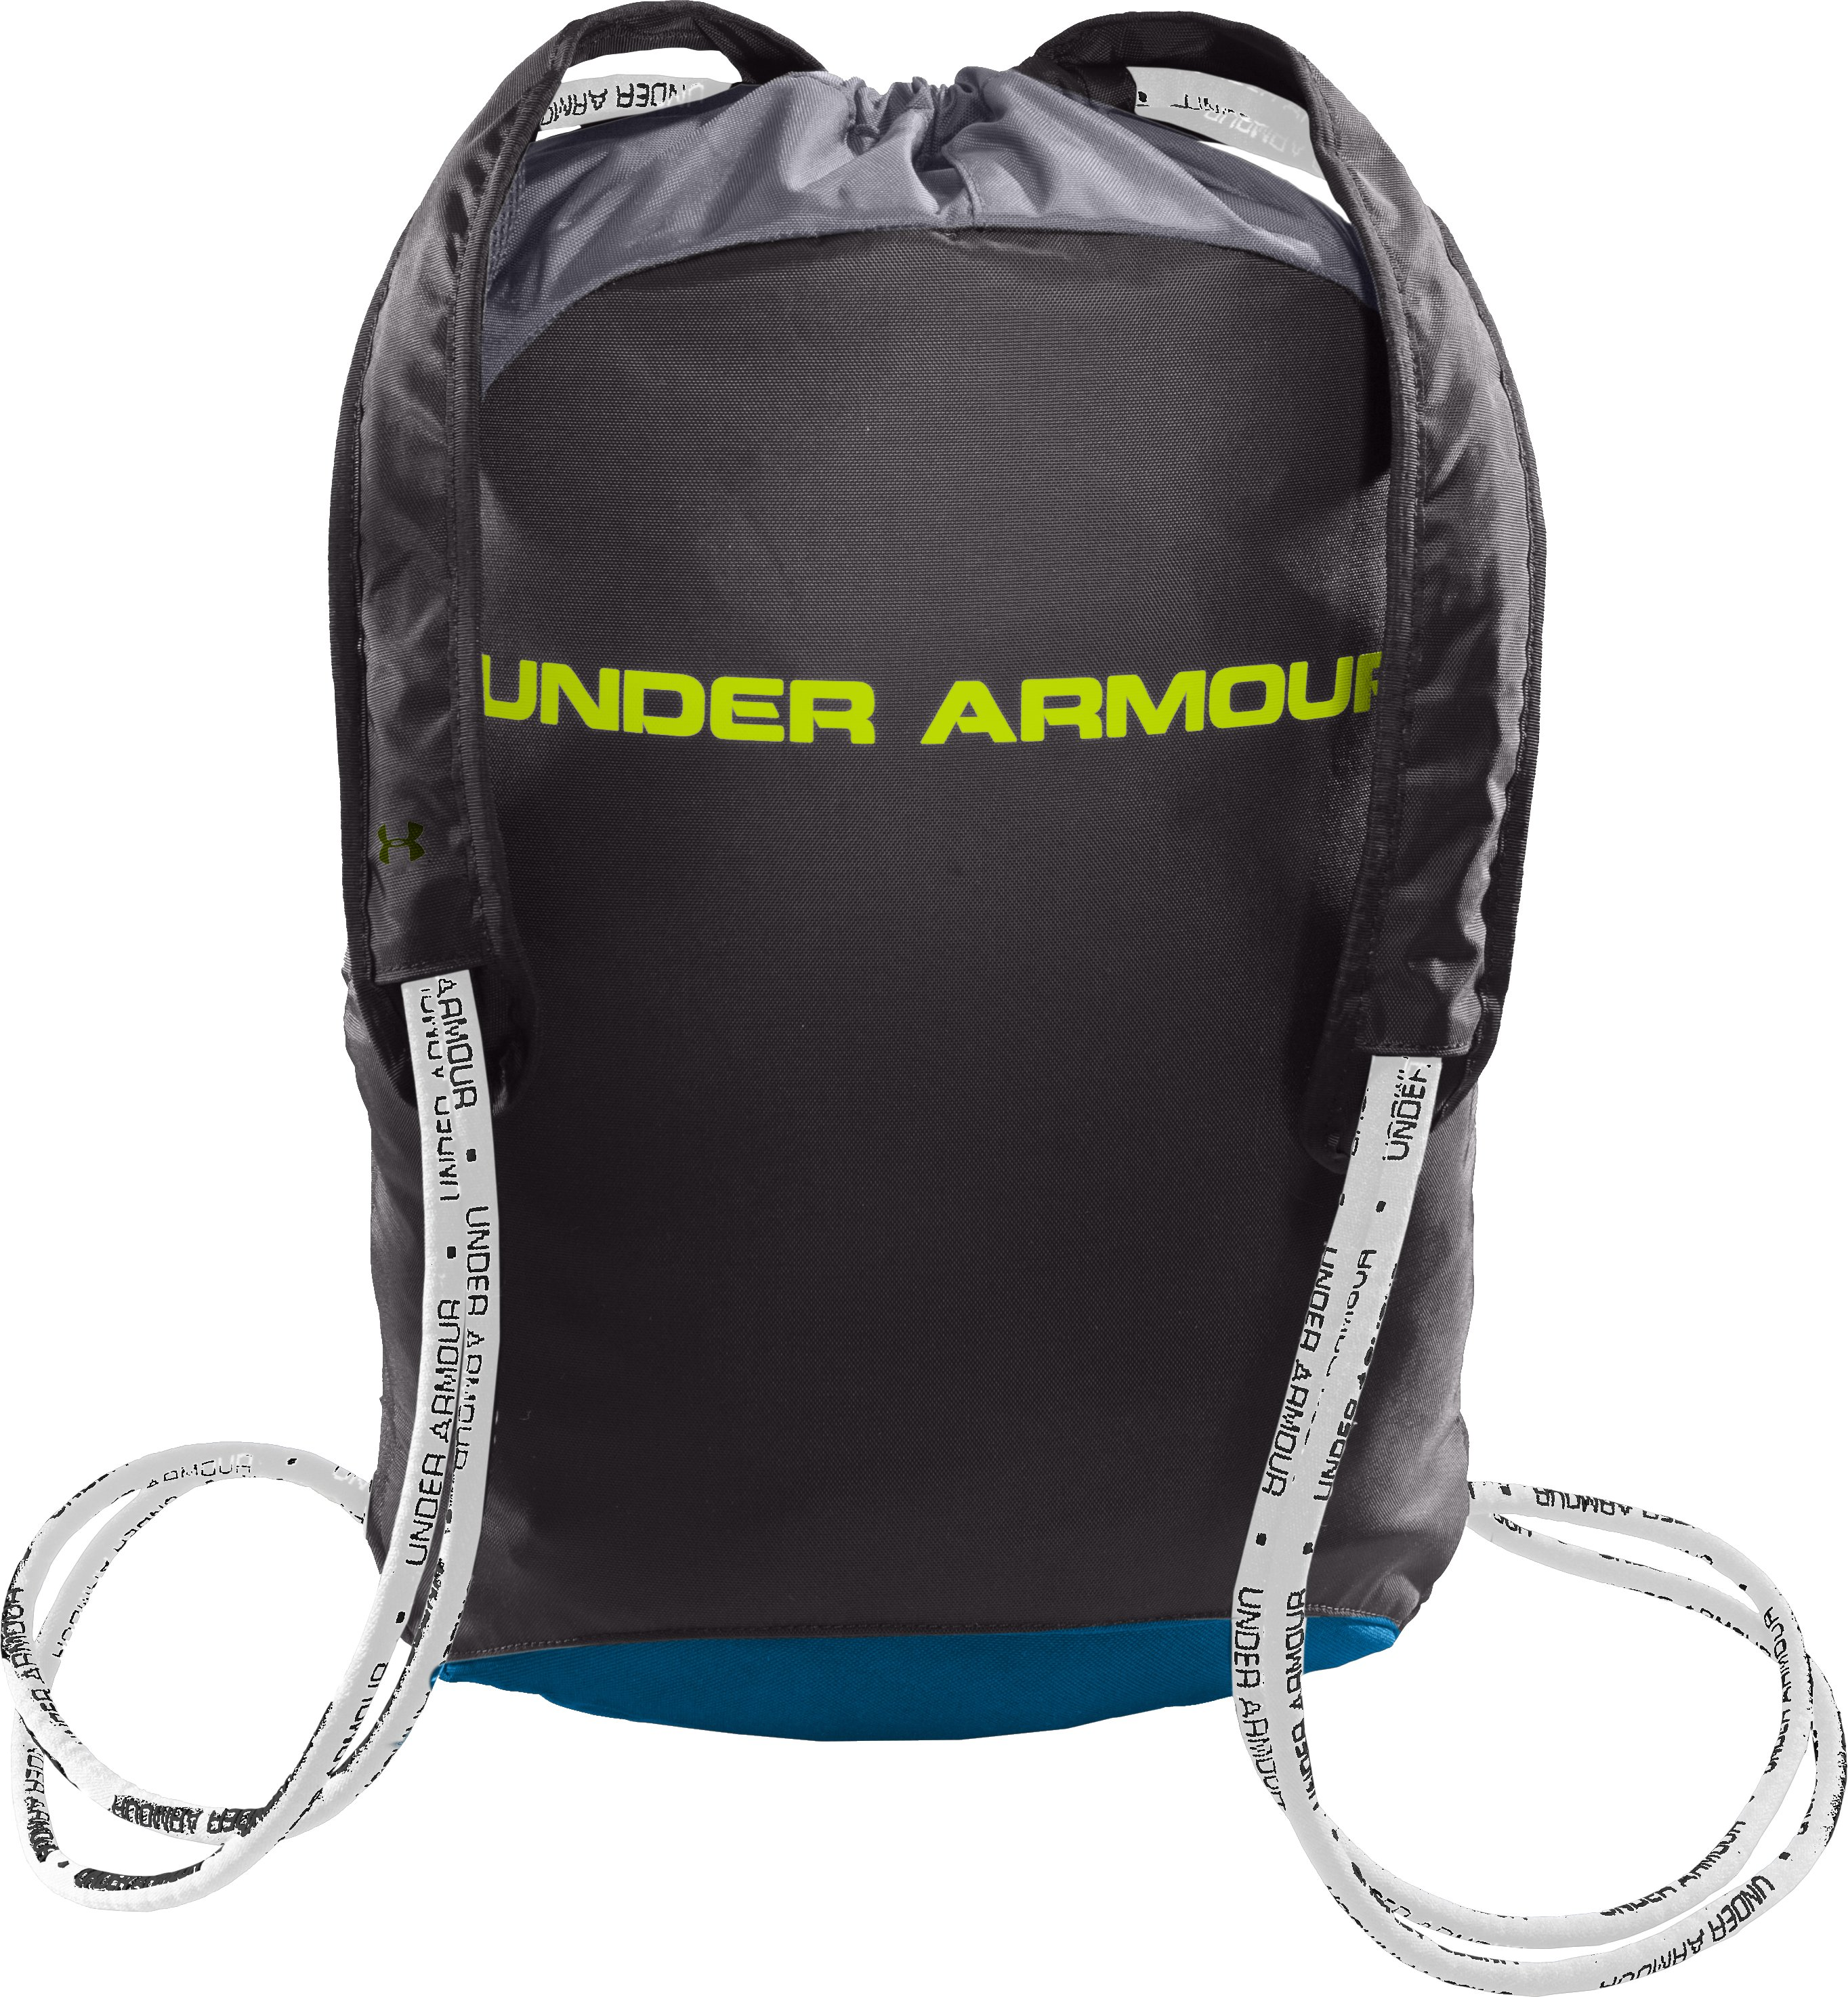 Armour Select® Sackpack 2.0, Charcoal, undefined